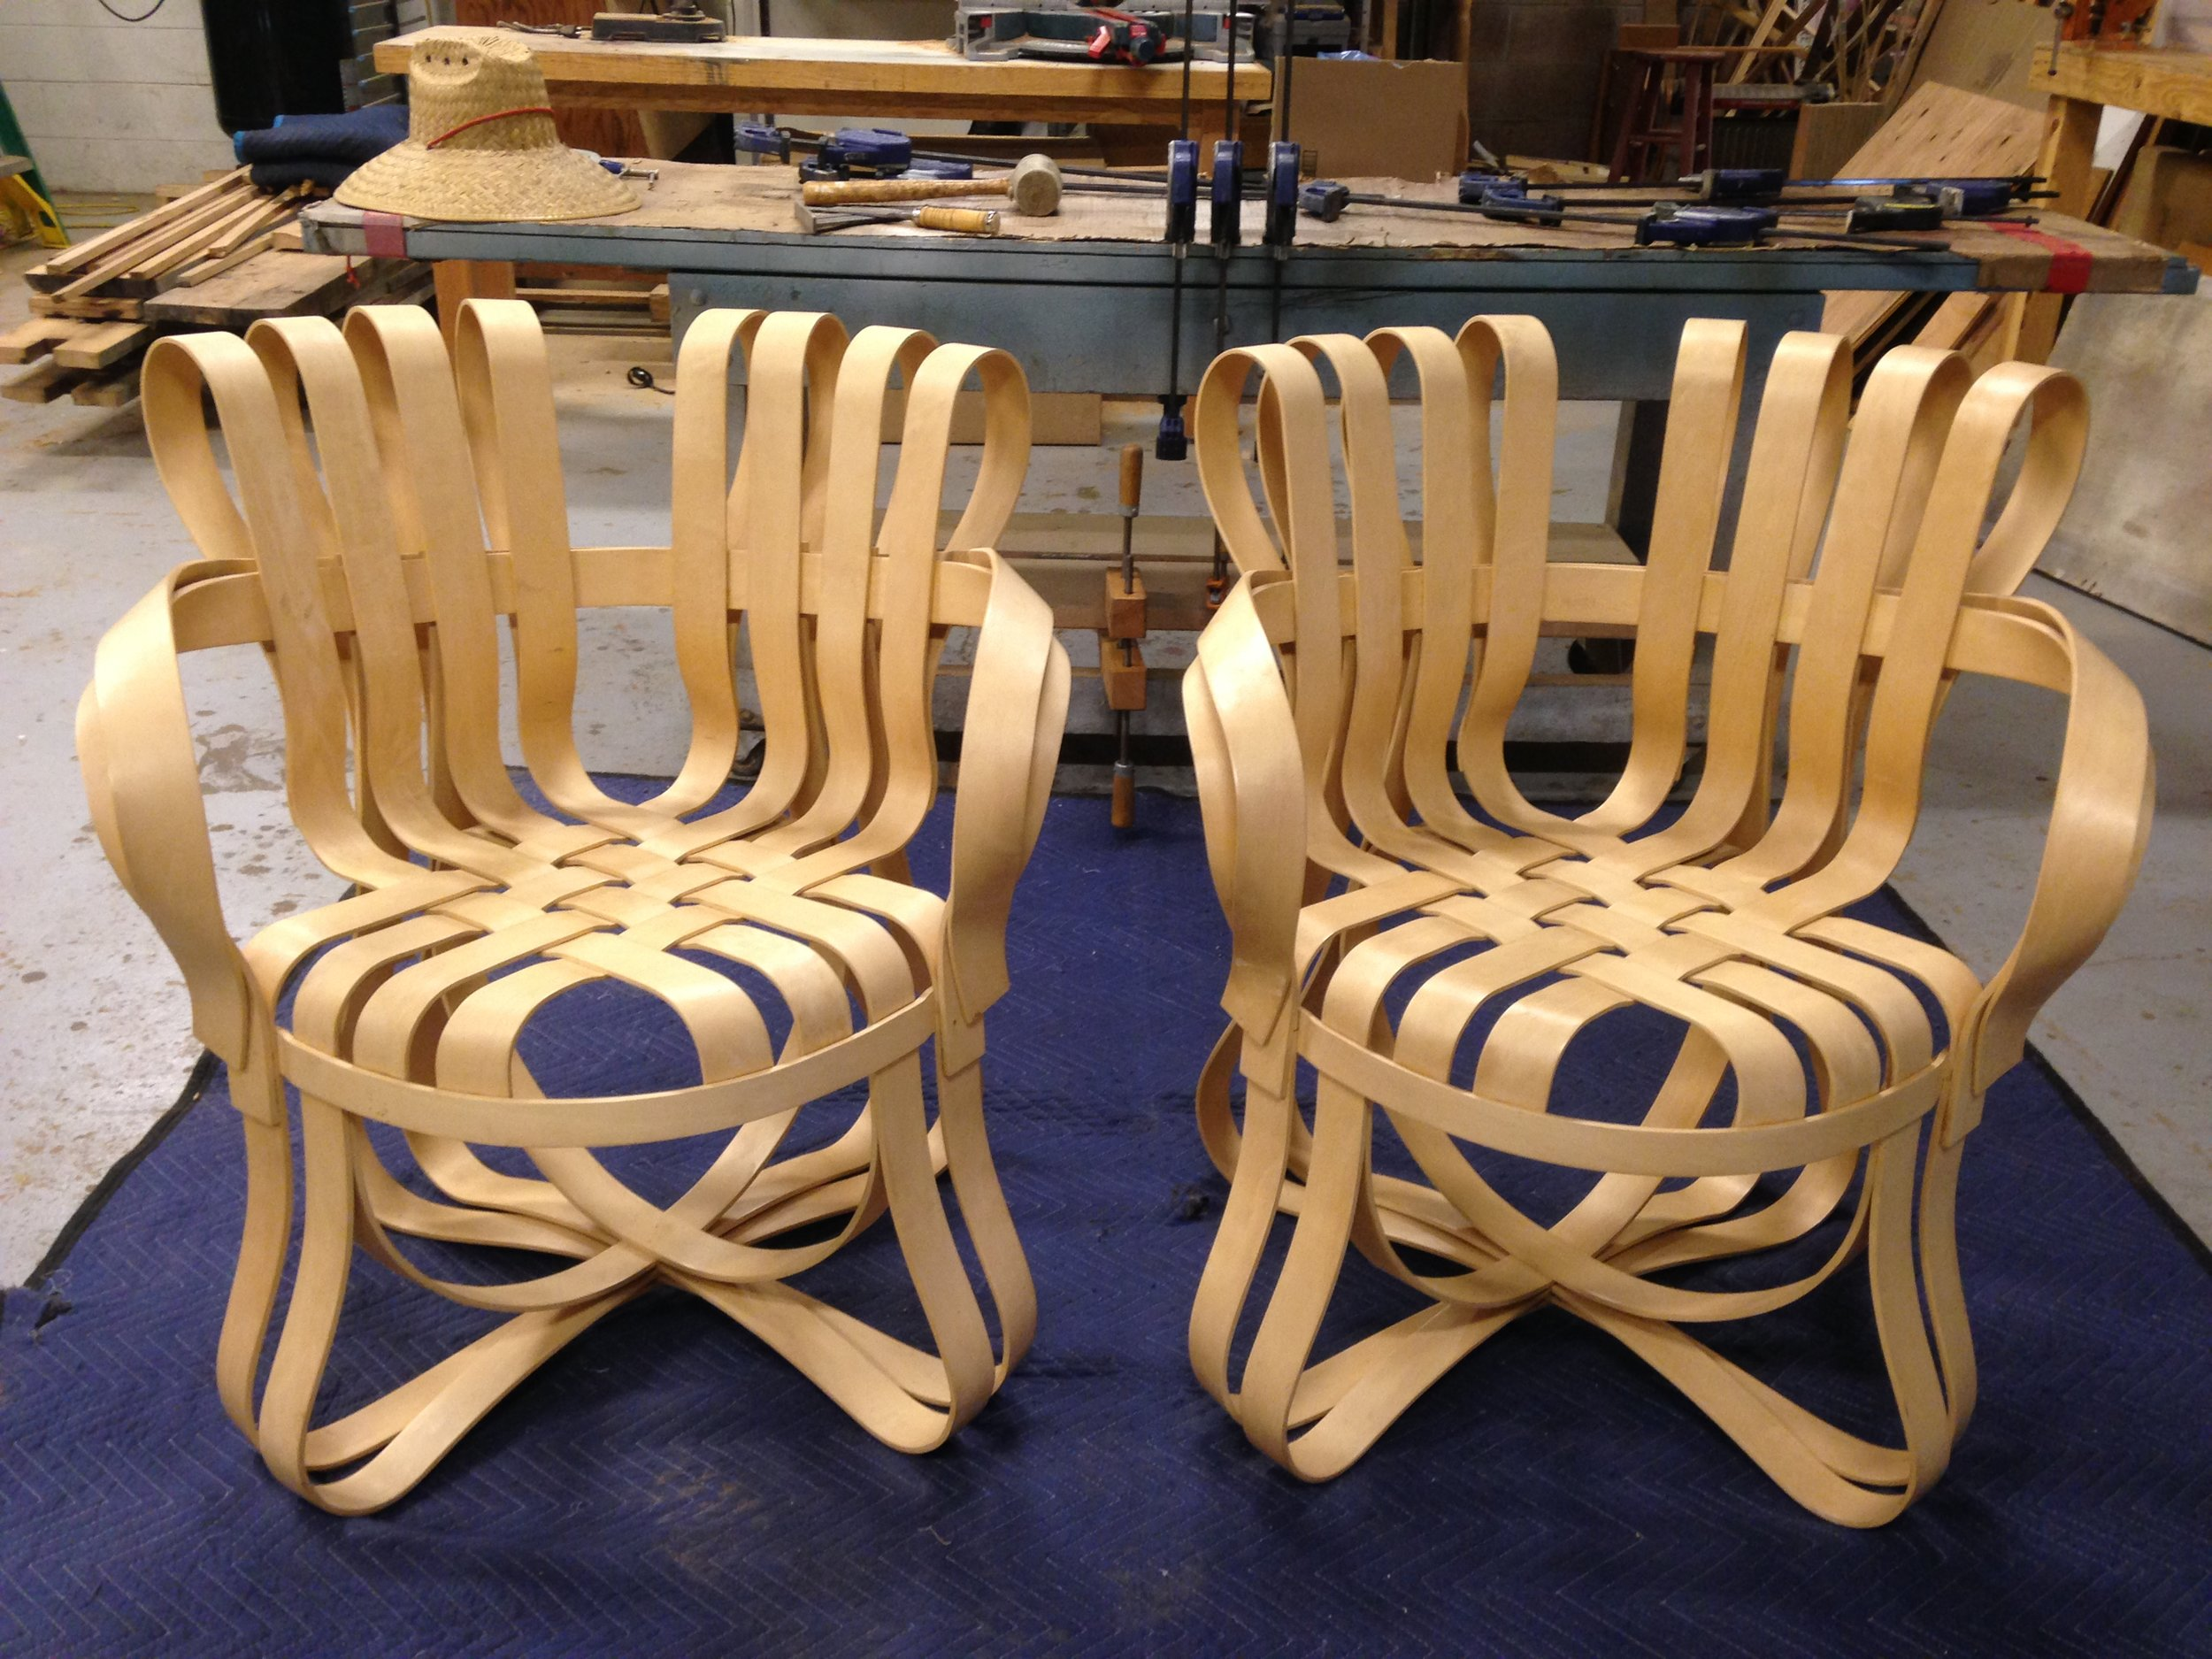 AFTER - Frank Gehry KNOLL chairs